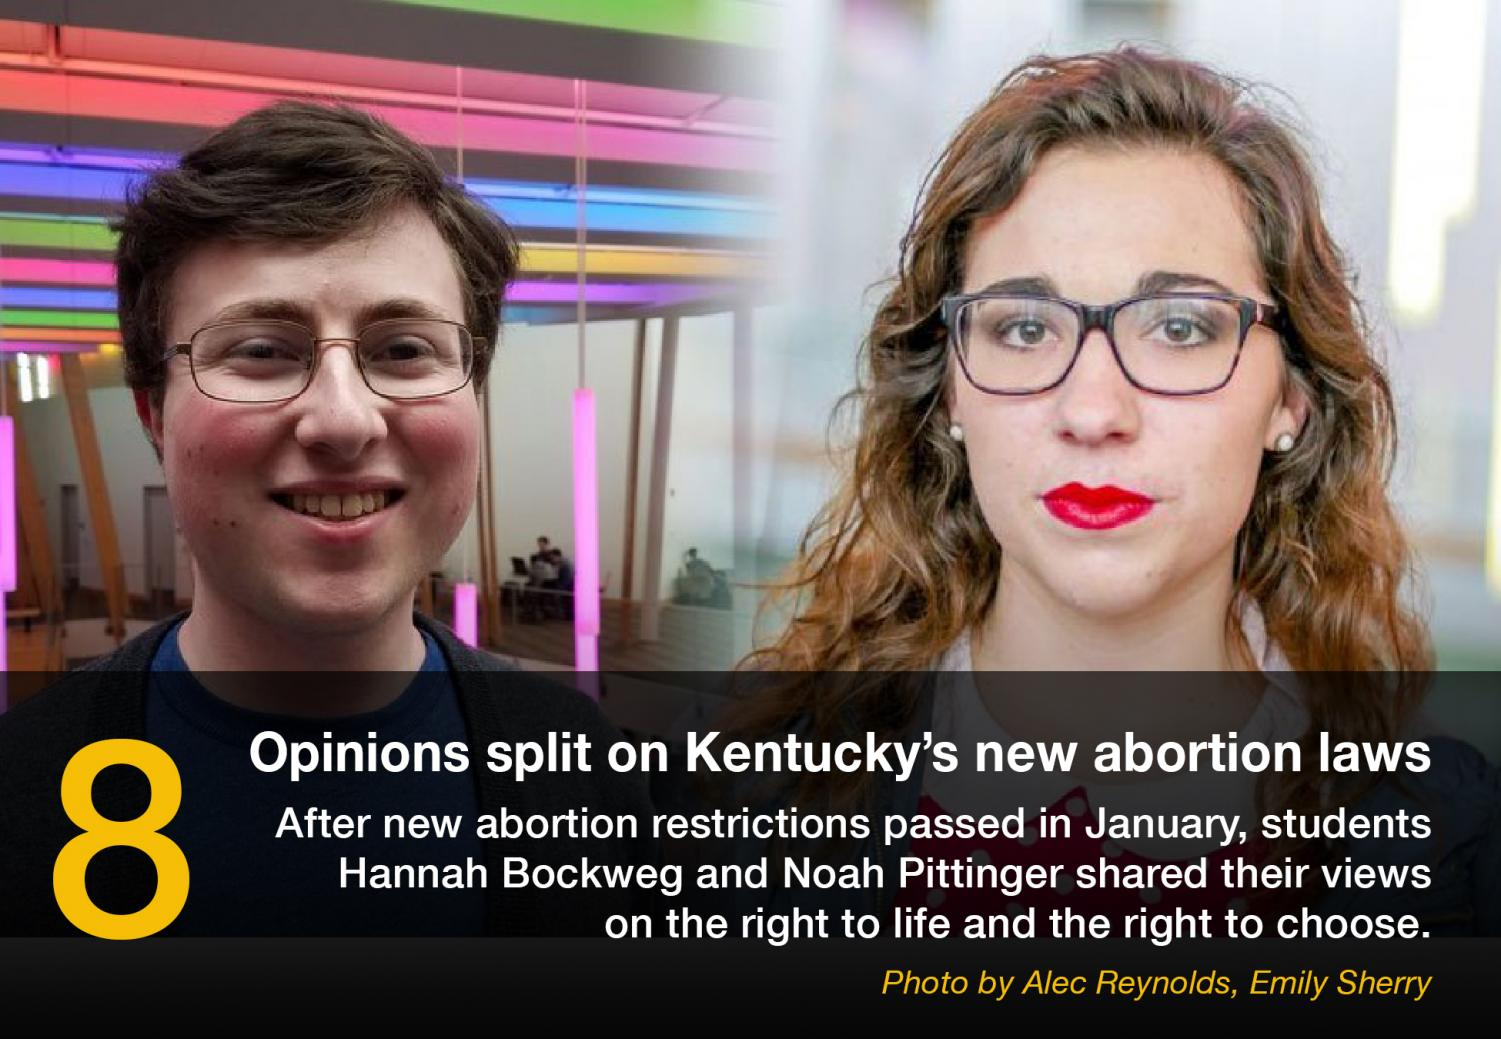 After+new+abortion+restrictions+passed+in+January%2C+students+Hannah+Bockweg+and+Noah+Pittinger+shared+their+views+on+the+right+to+life+and+the+right+to+choose.